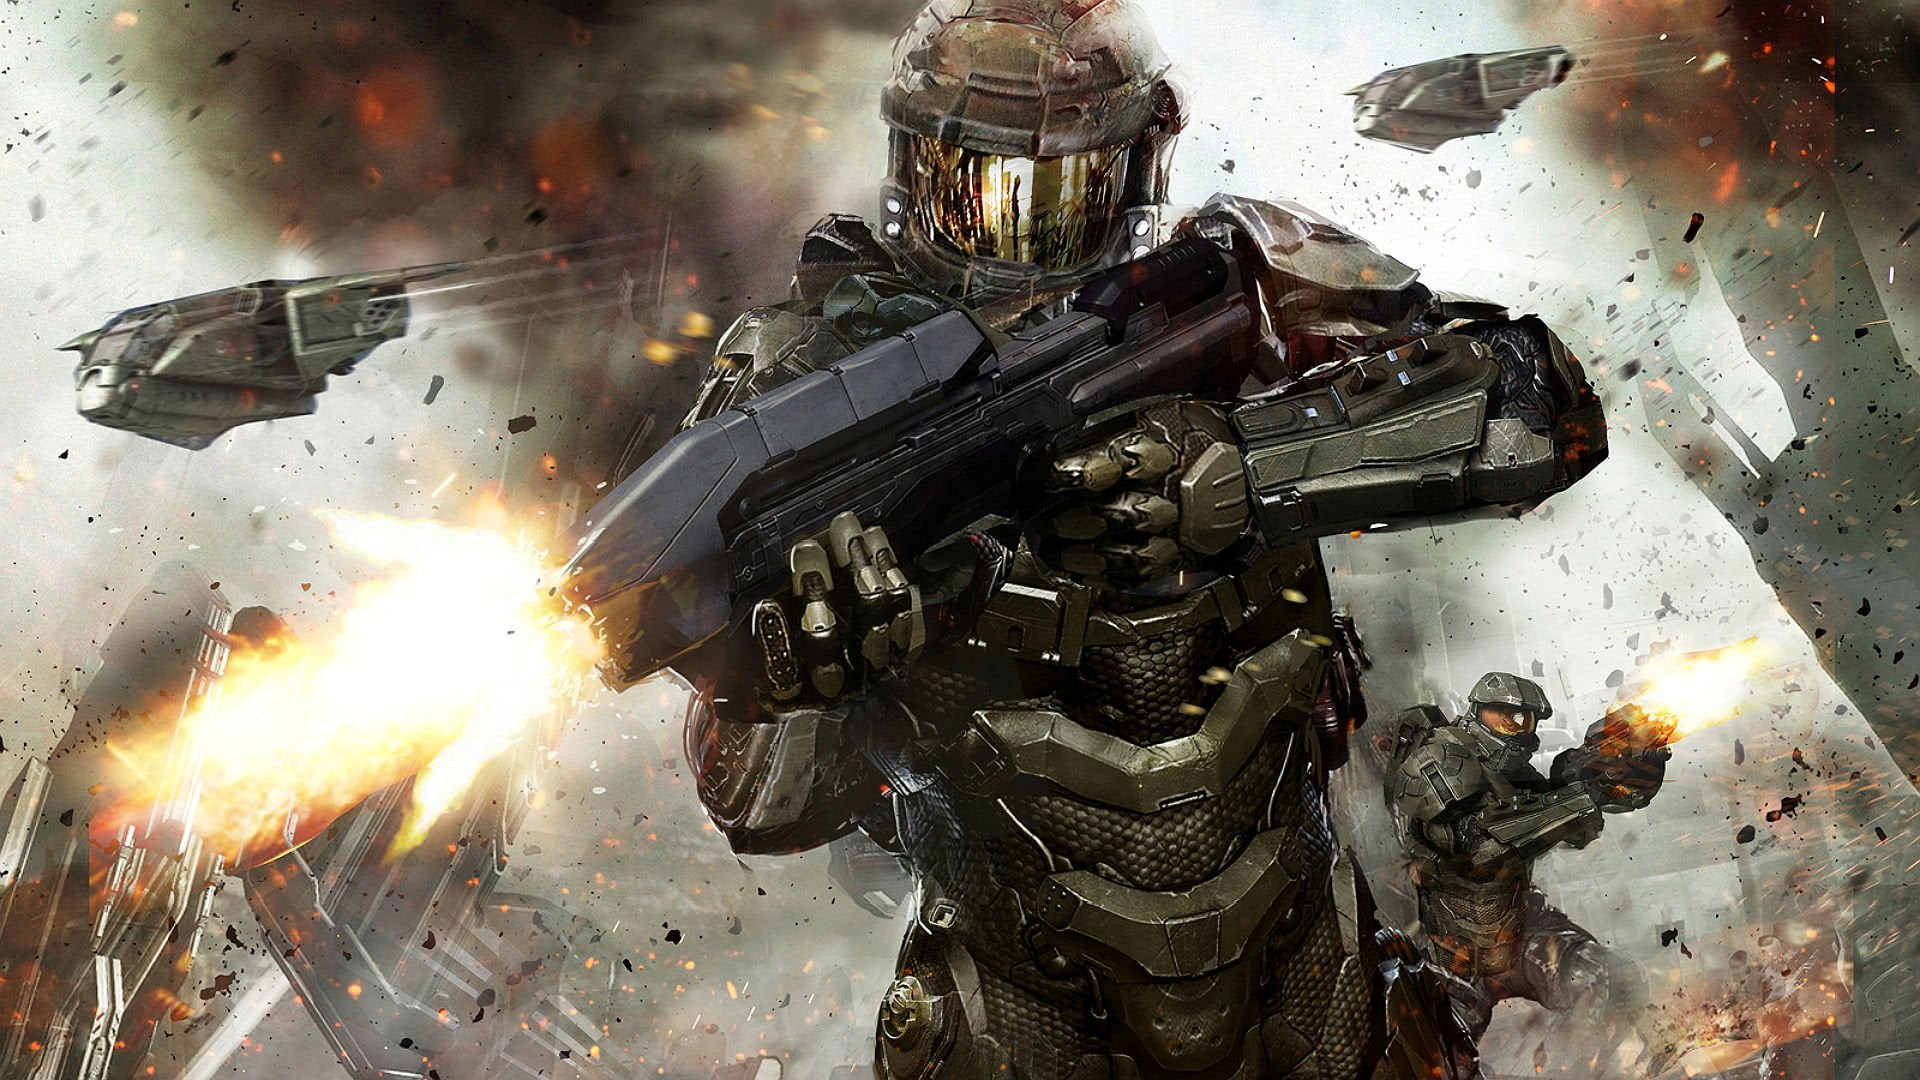 Res: 1920x1080, game character digital wallpaper, Halo, Halo 4, video games, Spartans HD  wallpaper